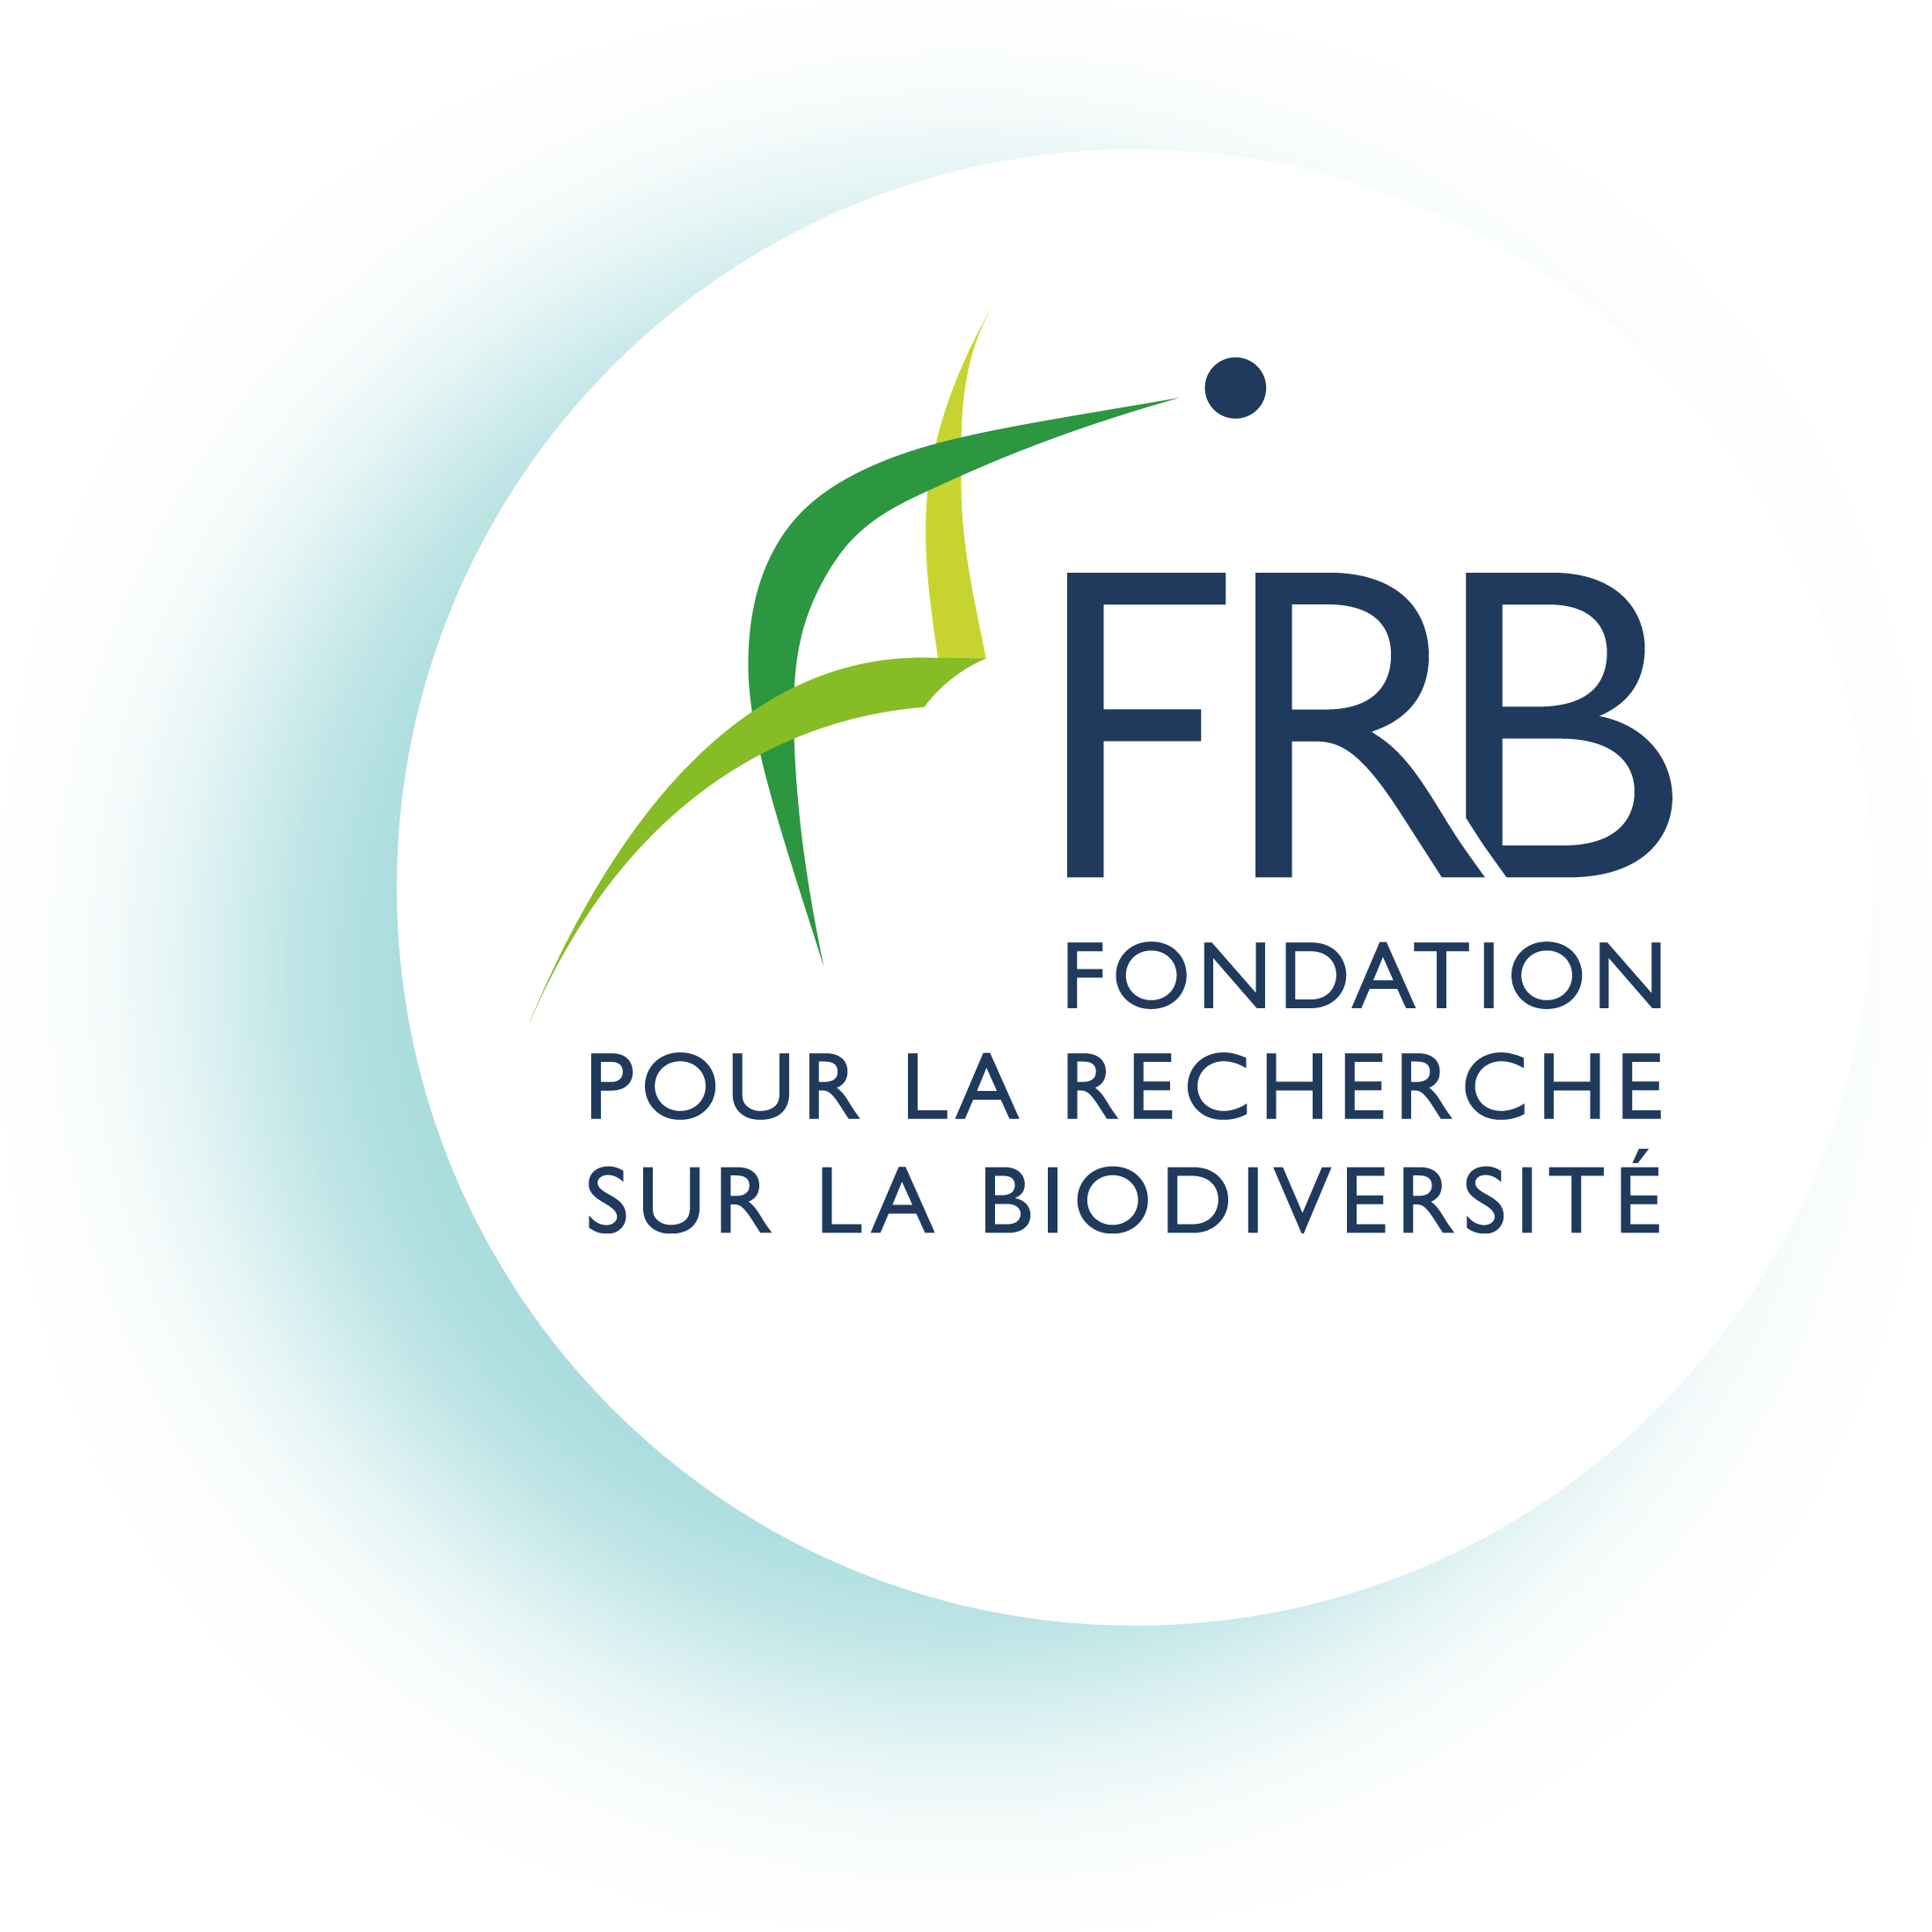 Foundation for Research on Biodiversity